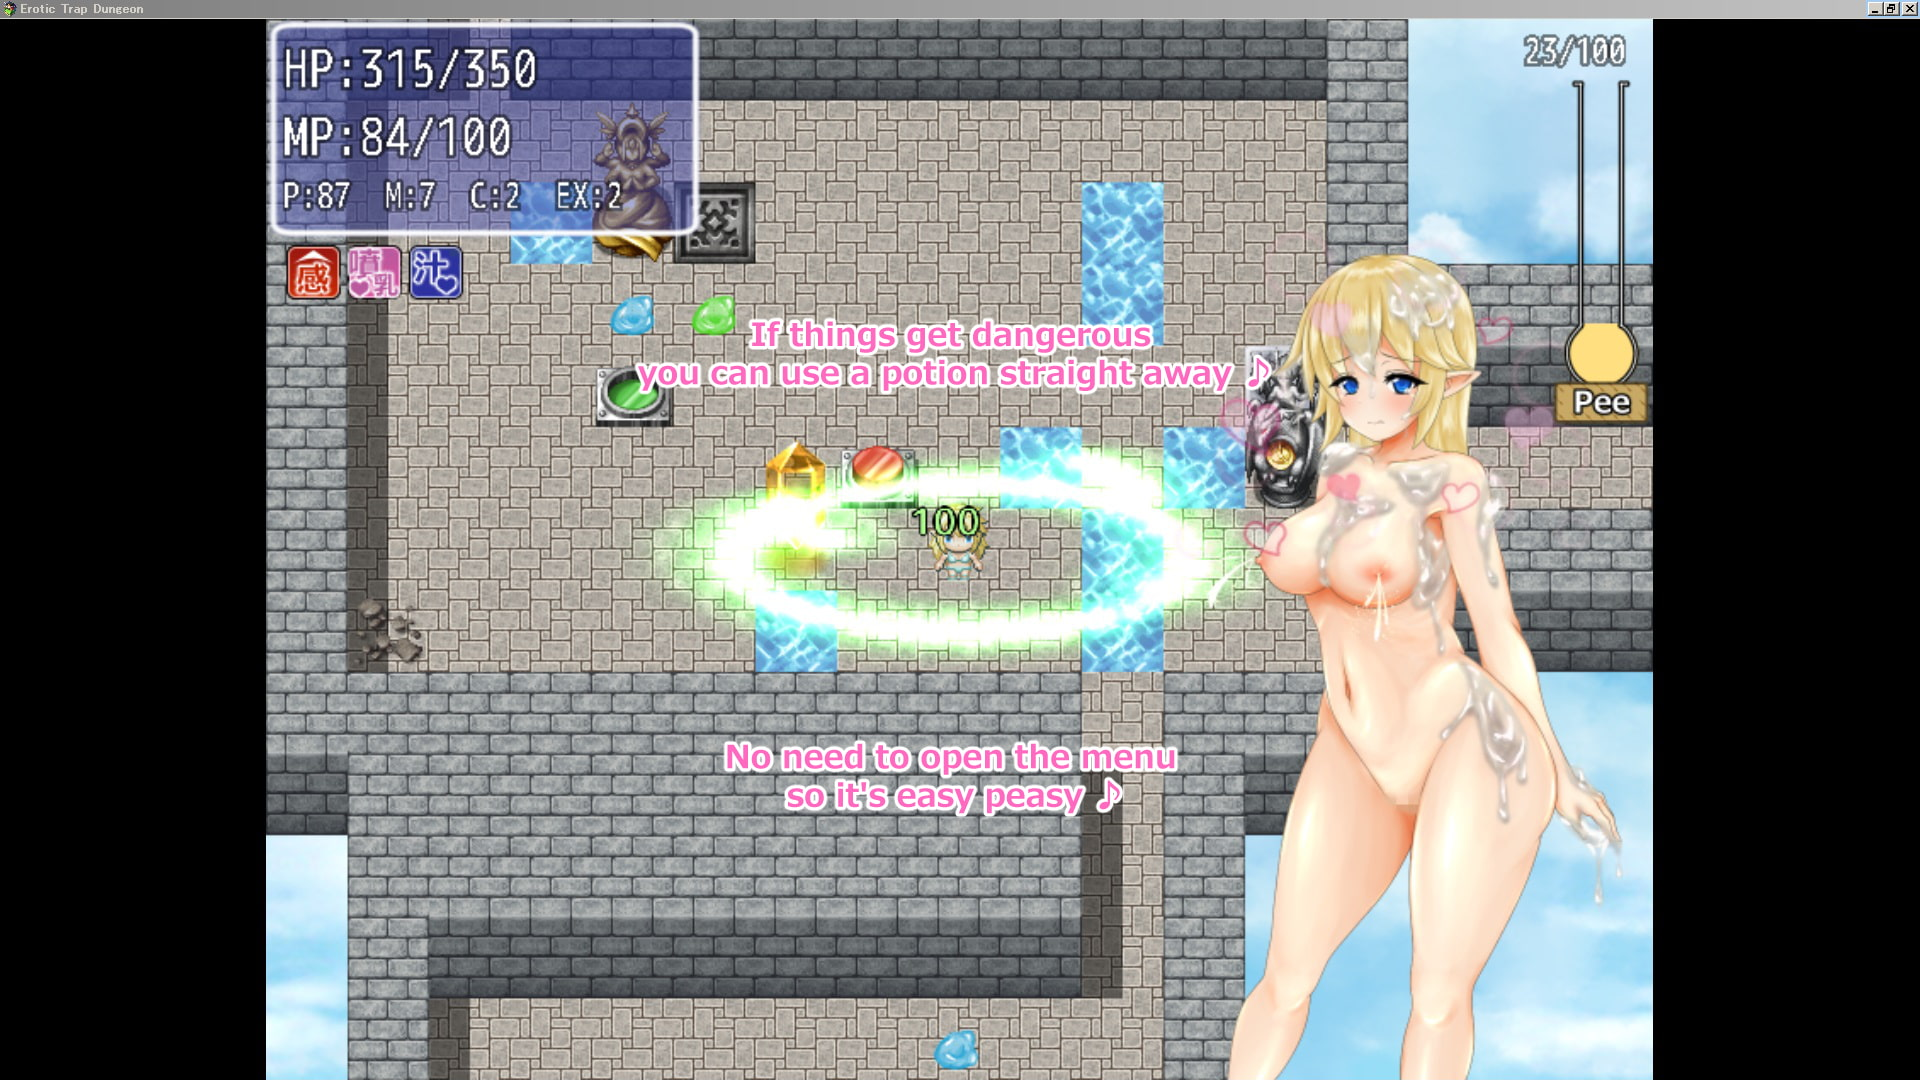 Erotic Trap Dungeon [I can not win the girl]